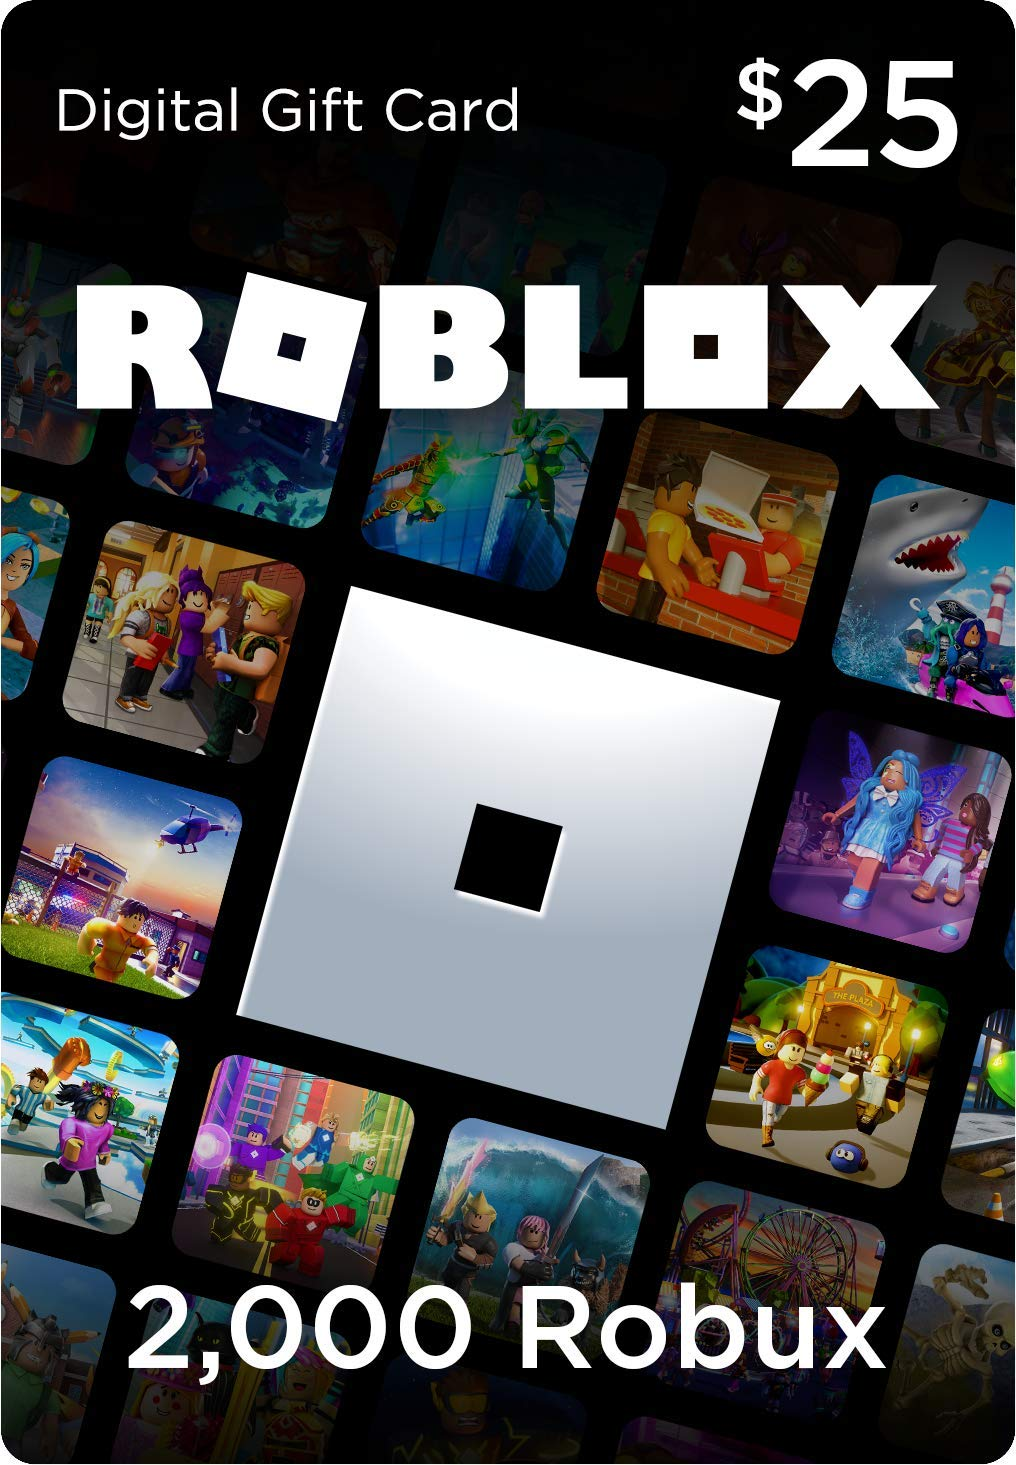 Amazon Com Roblox Gift Card 4500 Robux Includes Exclusive Virtual Item Online Game Code Video Games